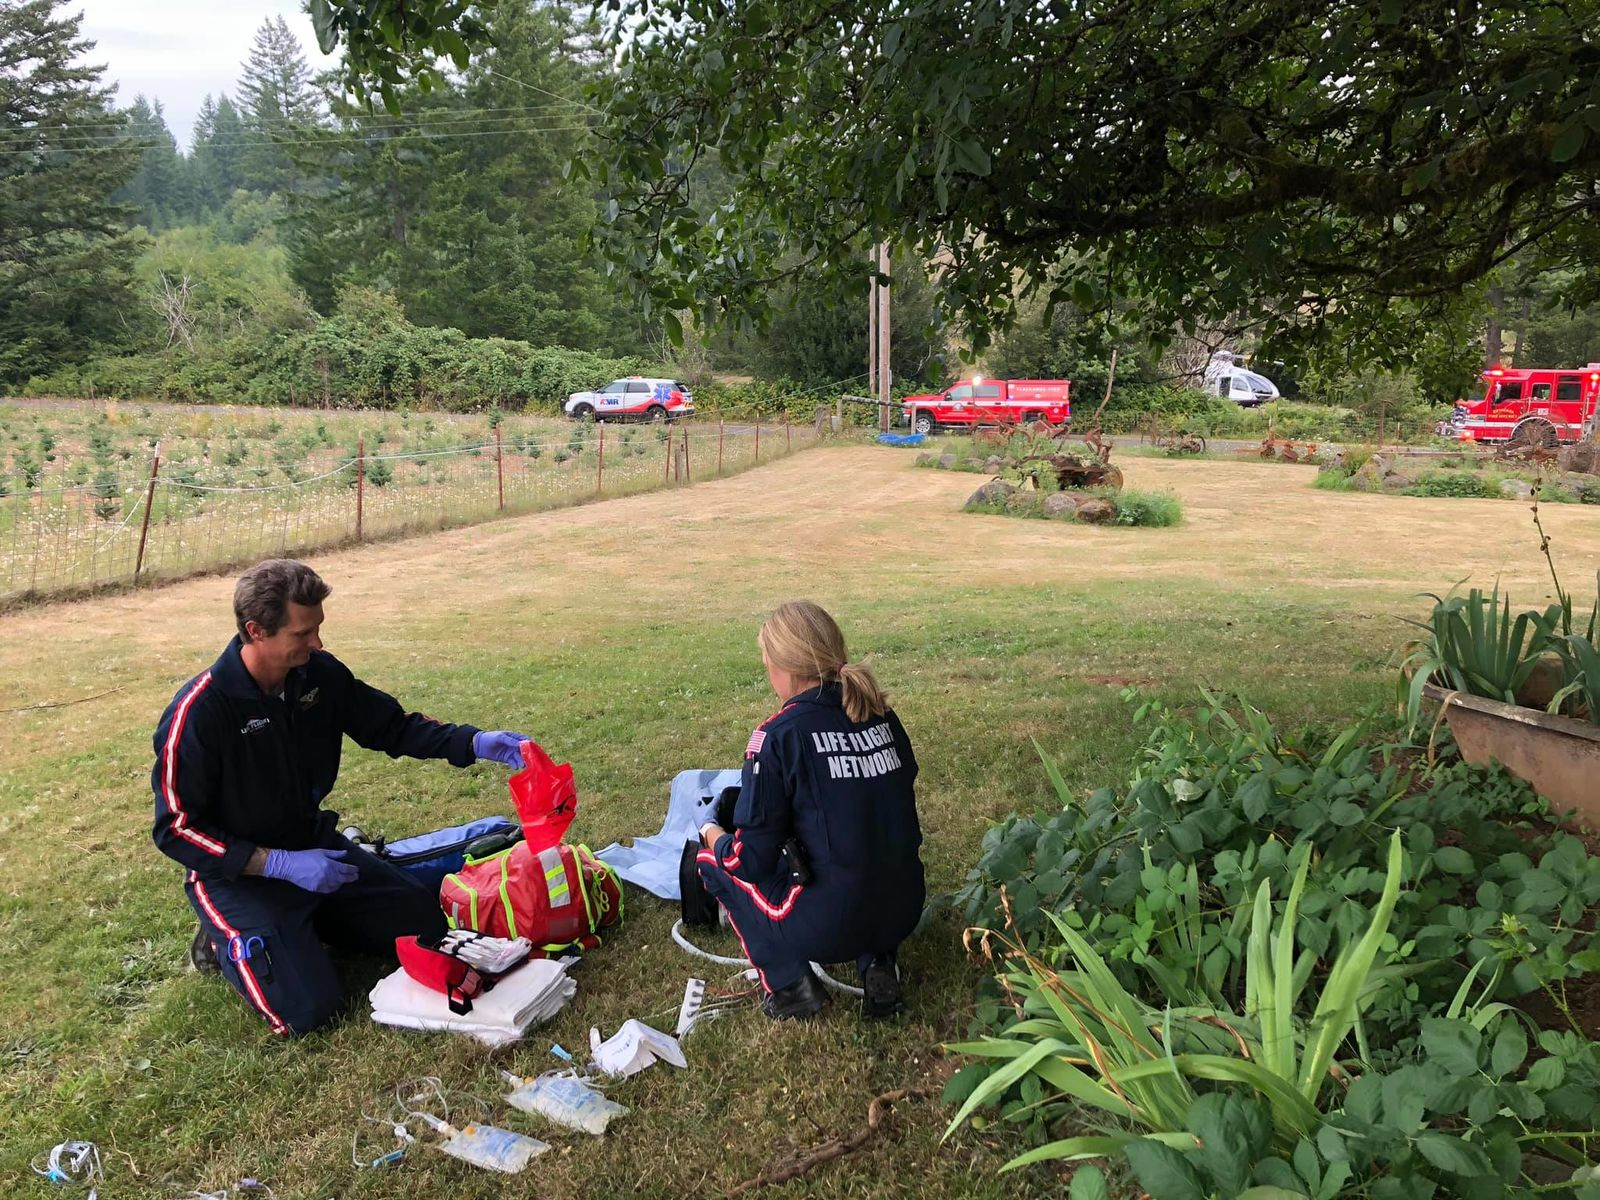 Estacada firefighters rescued a person on Aug. 20, 2019 who had been stuck in a septic tank for multiple days. Photo courtesy Estacada Rural Fire District No. 69